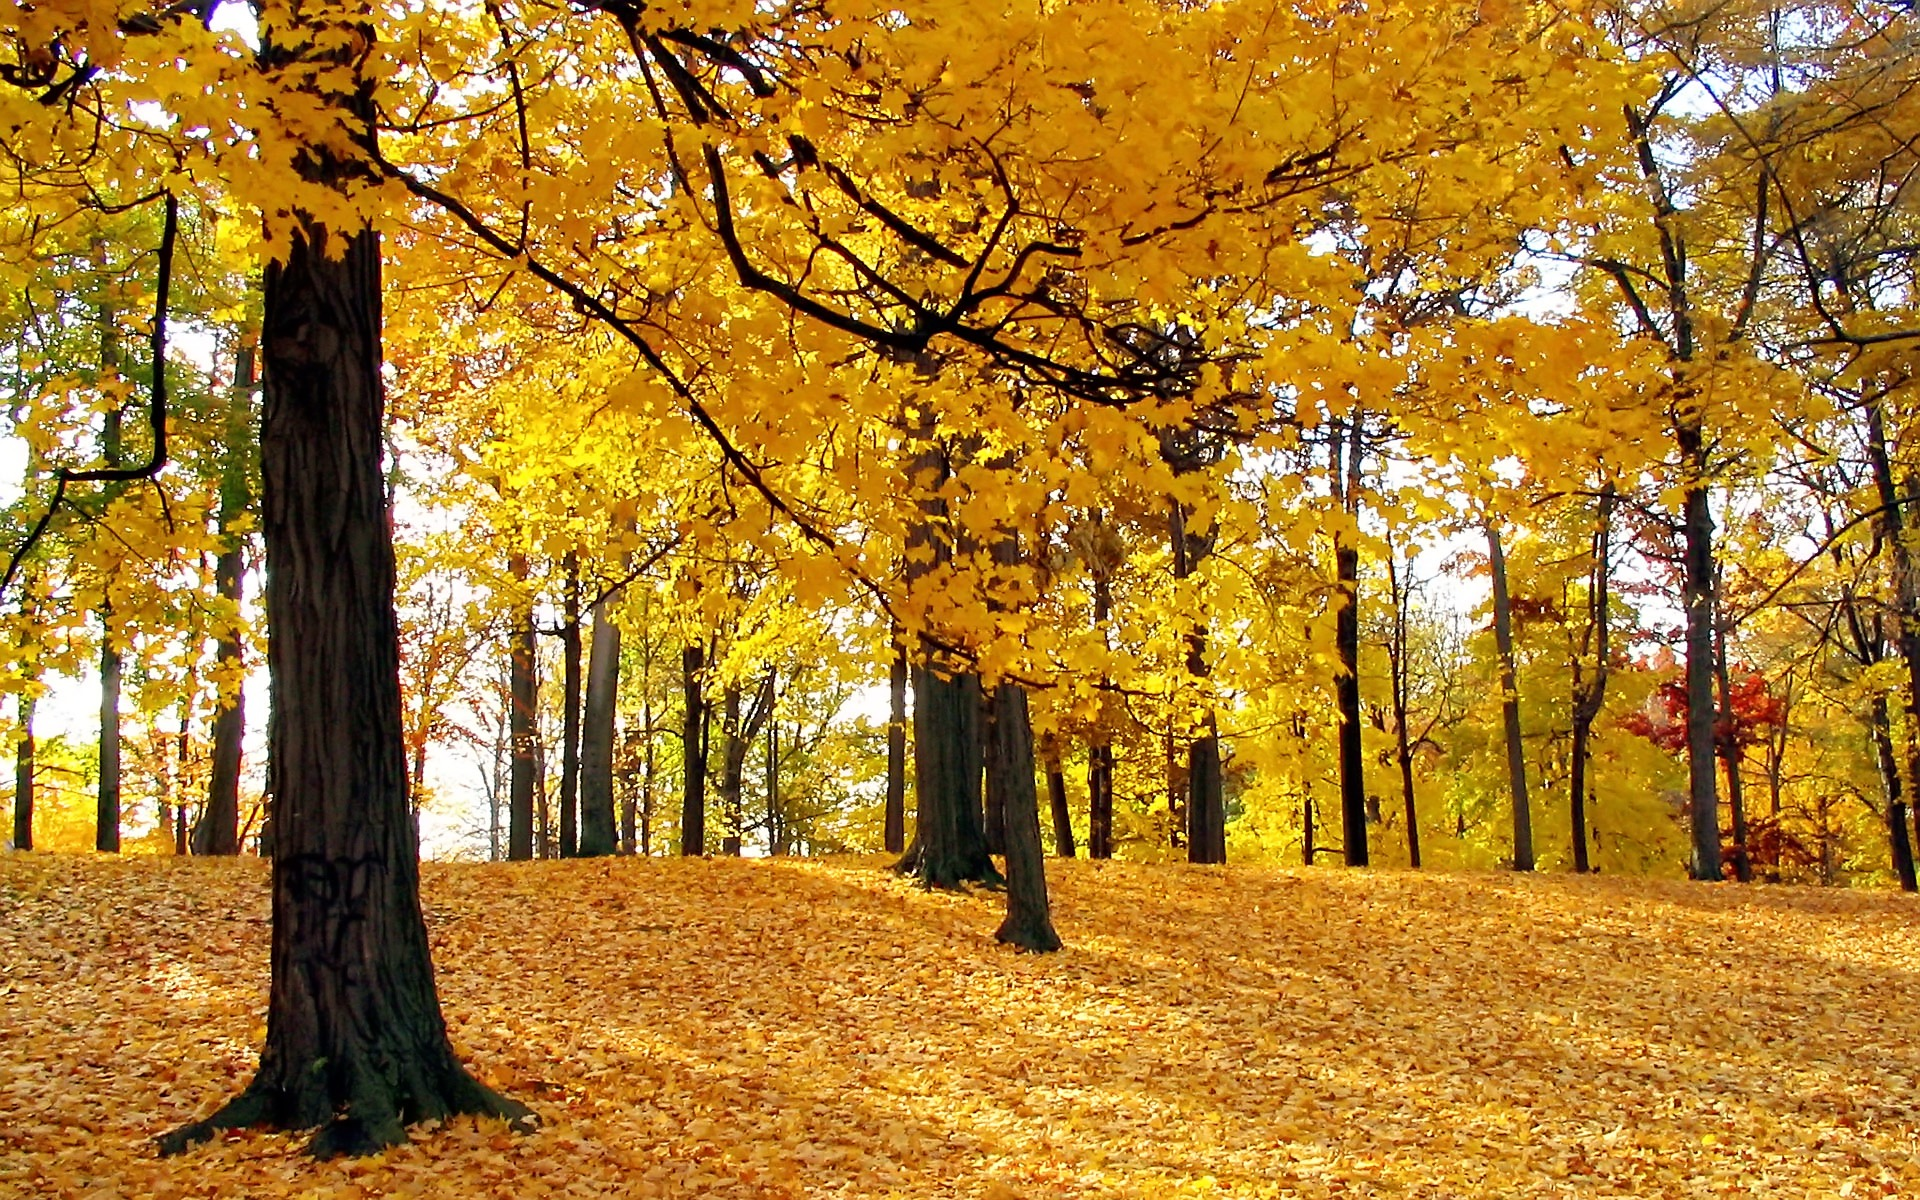 Nature wallpaper autumn trees wallpapers for free download about